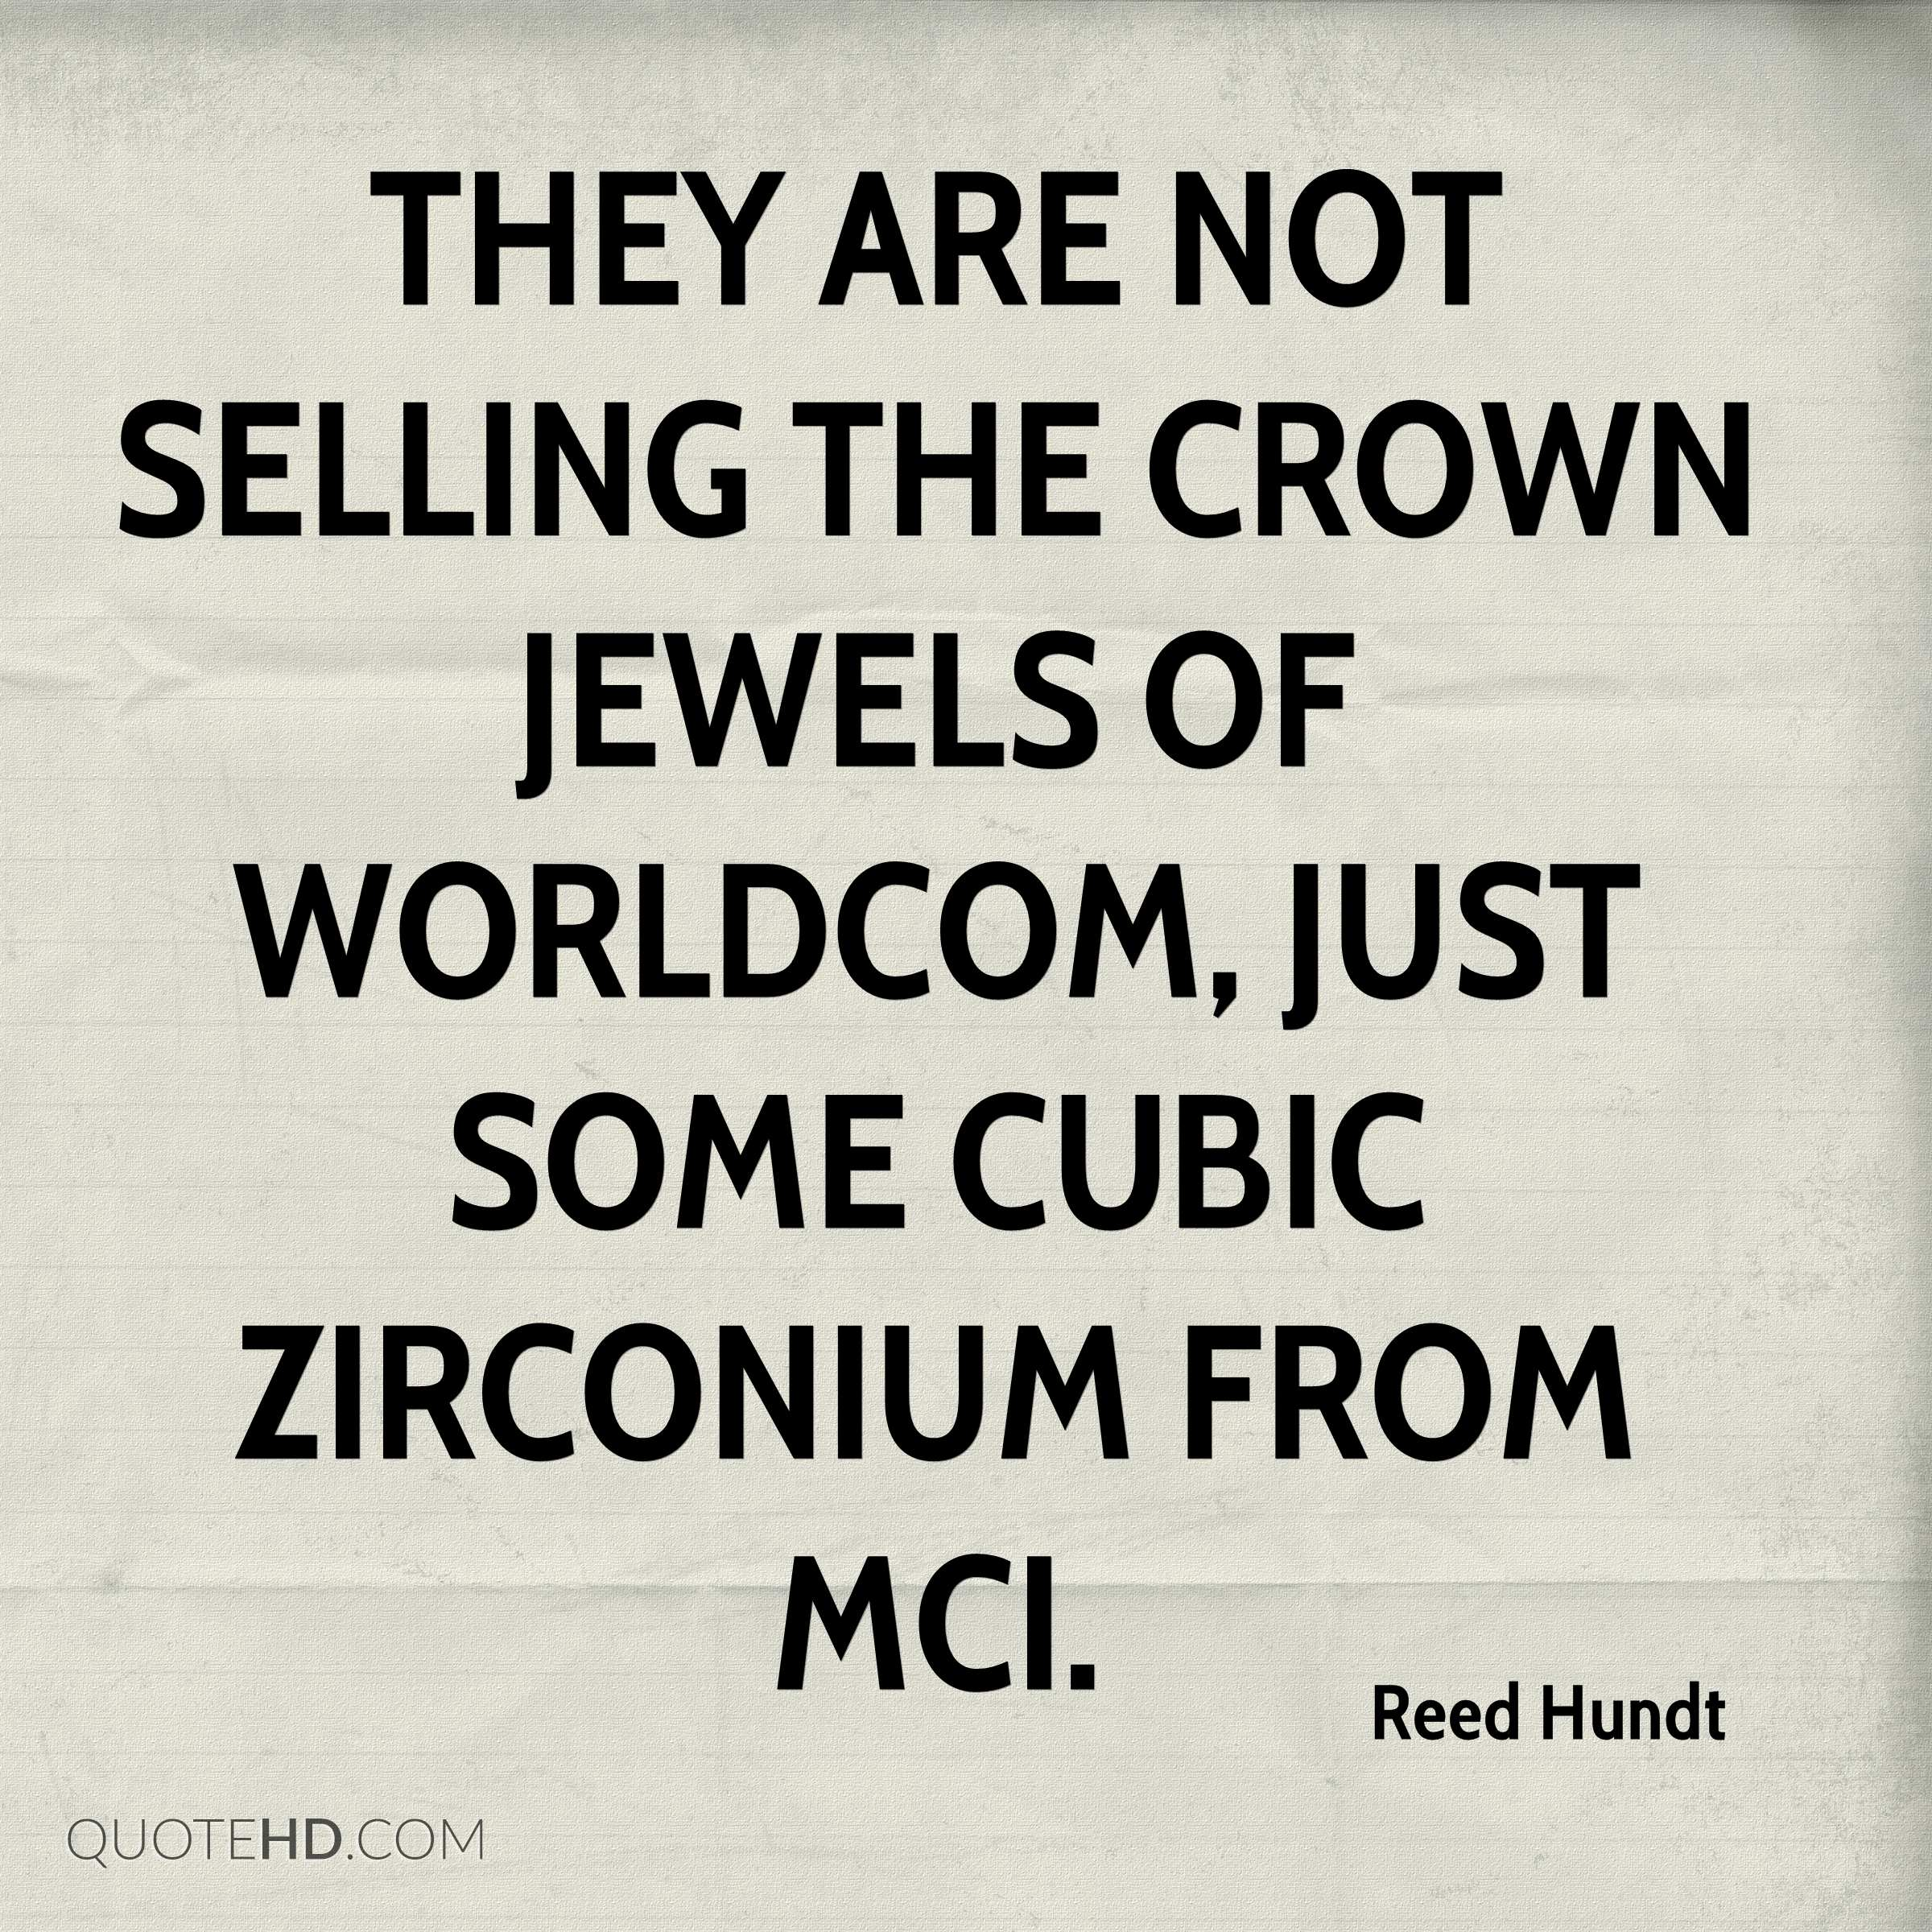 They are not selling the crown jewels of WorldCom, just some cubic zirconium from MCI.